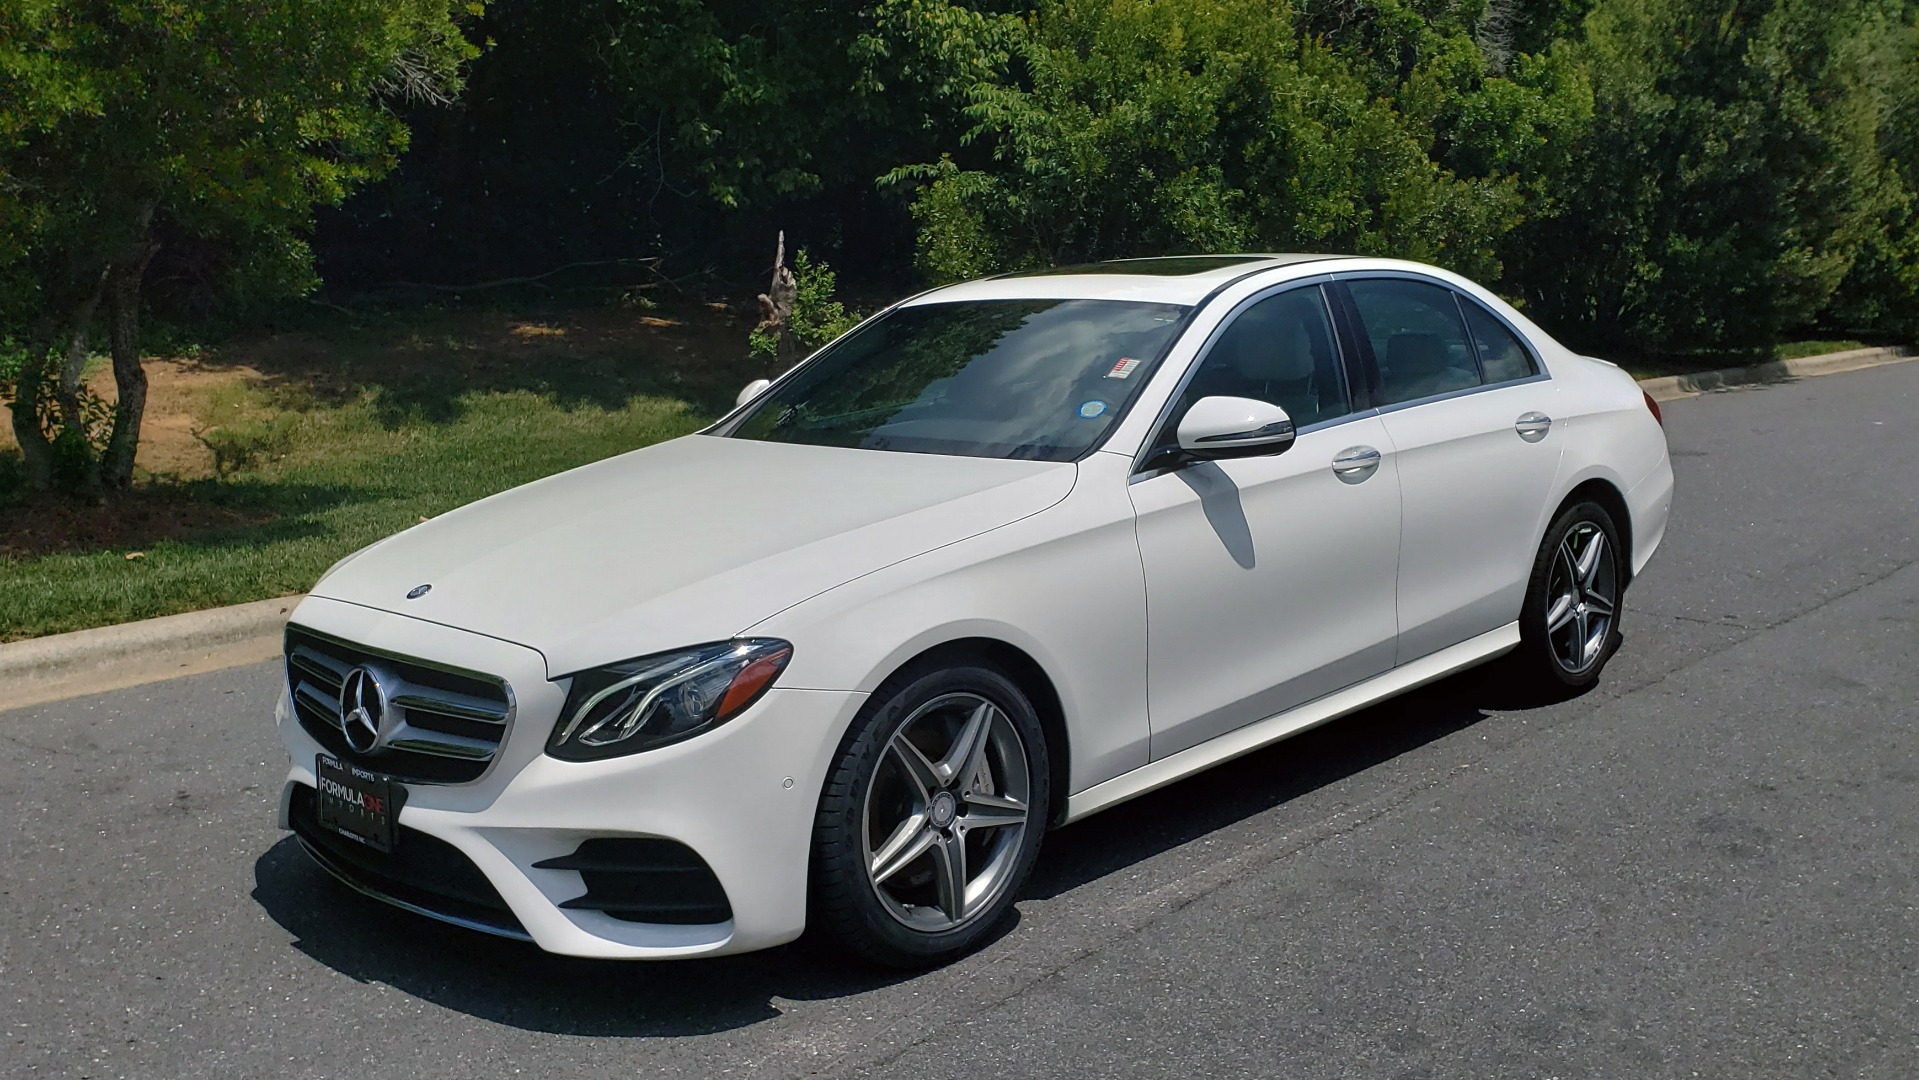 Used 2017 Mercedes-Benz E-CLASS E 300 PREMIUM / SPORT / NAV / SUNROOF / HTD STS / BSM / REARVIEW for sale $27,995 at Formula Imports in Charlotte NC 28227 1